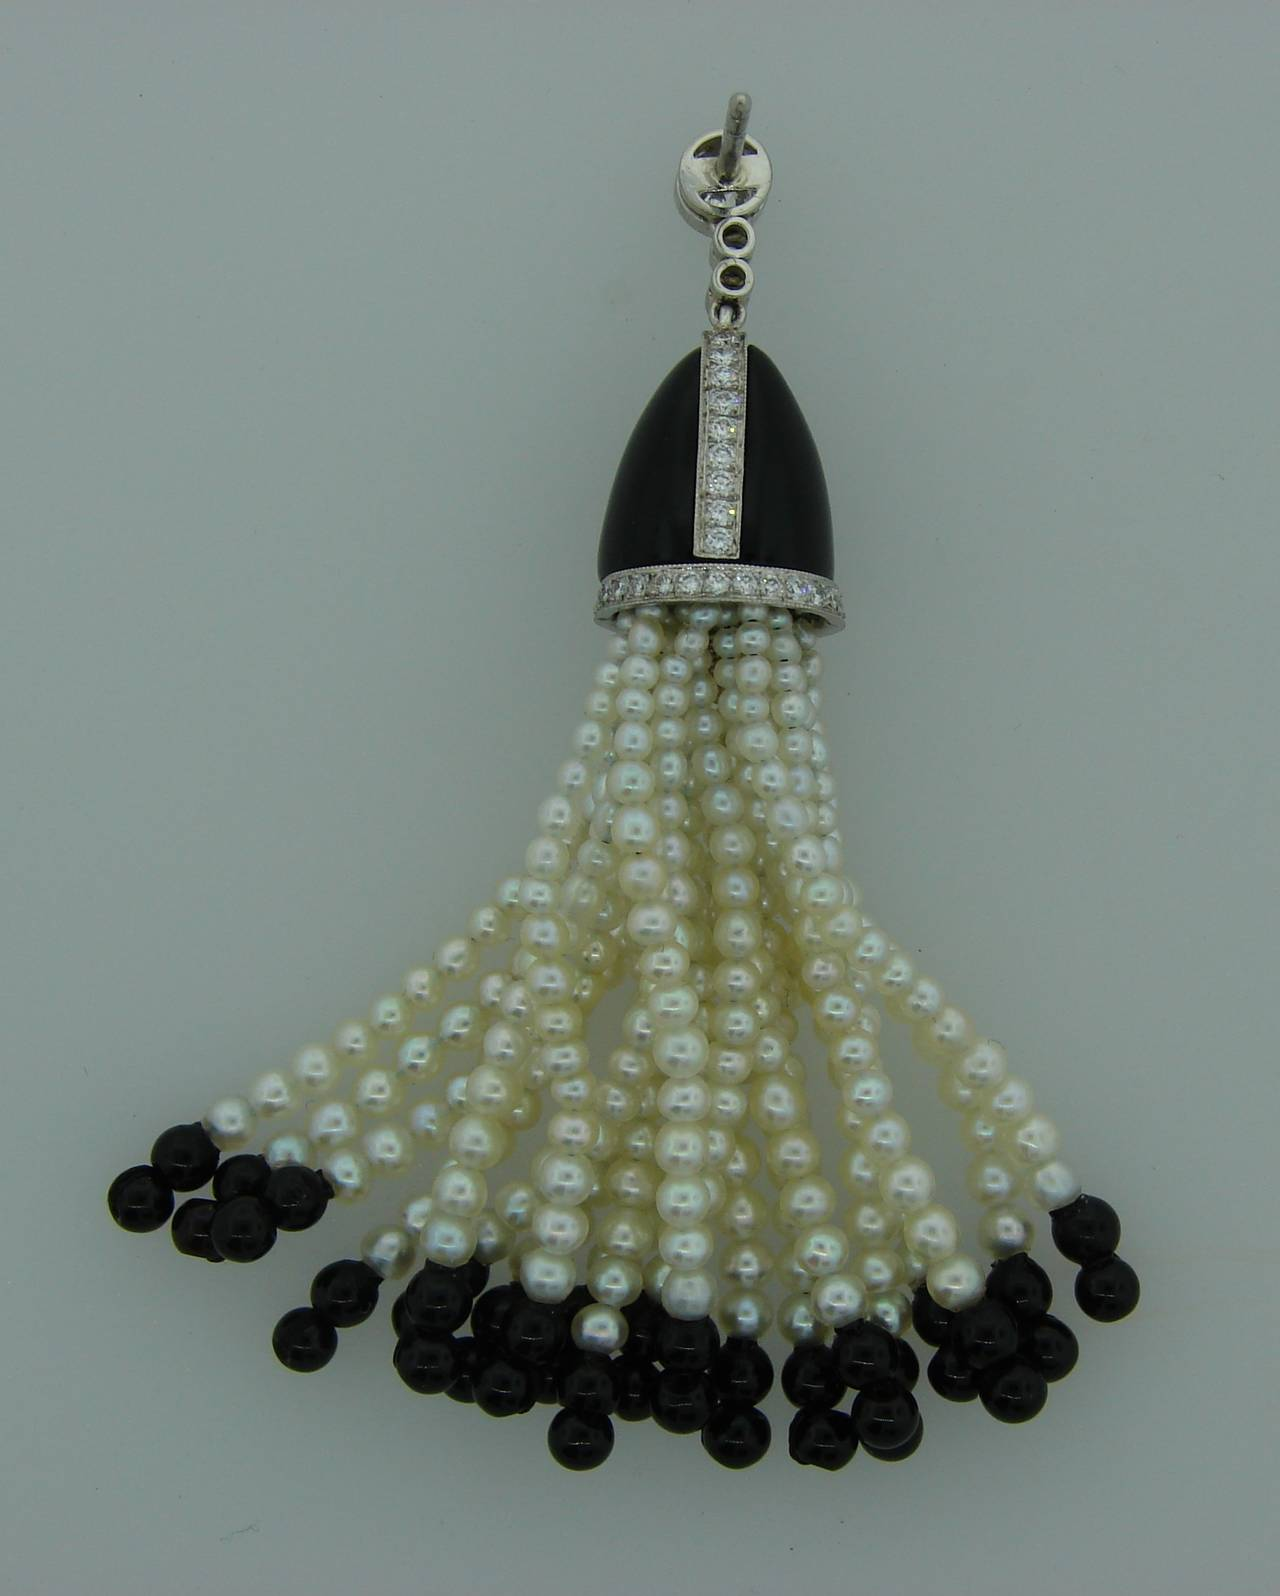 ccf376213 1960s Tiffany & Co. Seed Pearl Black Onyx Diamond Platinum Tassel Earrings  In Excellent Condition